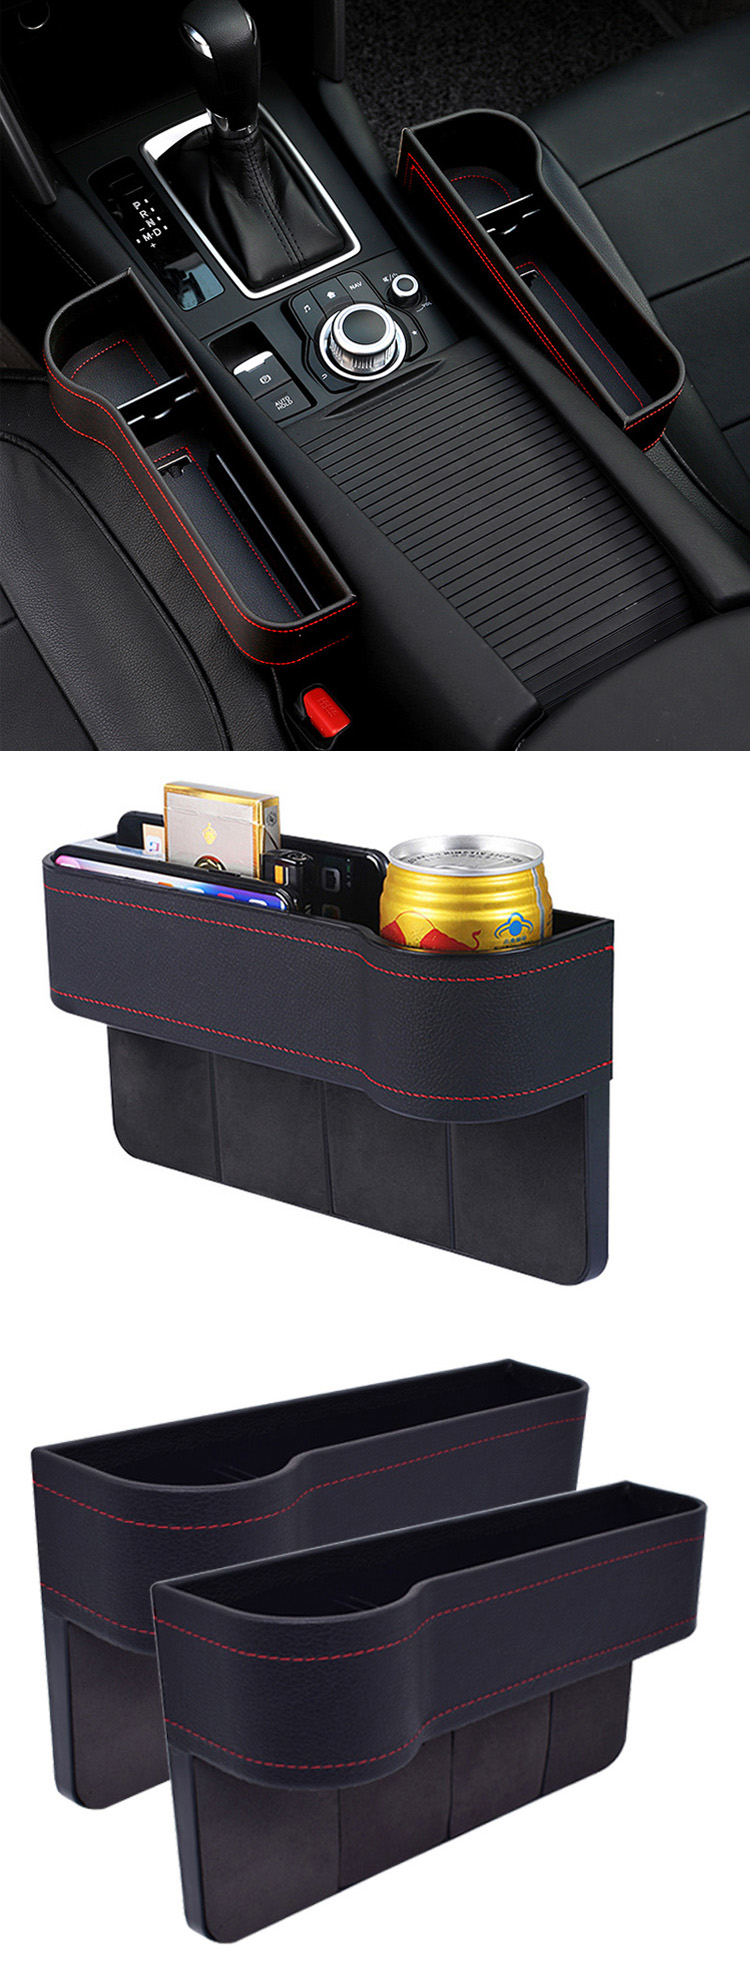 2020 Premium PU Leather Car Console Side Seat Gap Filler Pocket with Cup Holder Design